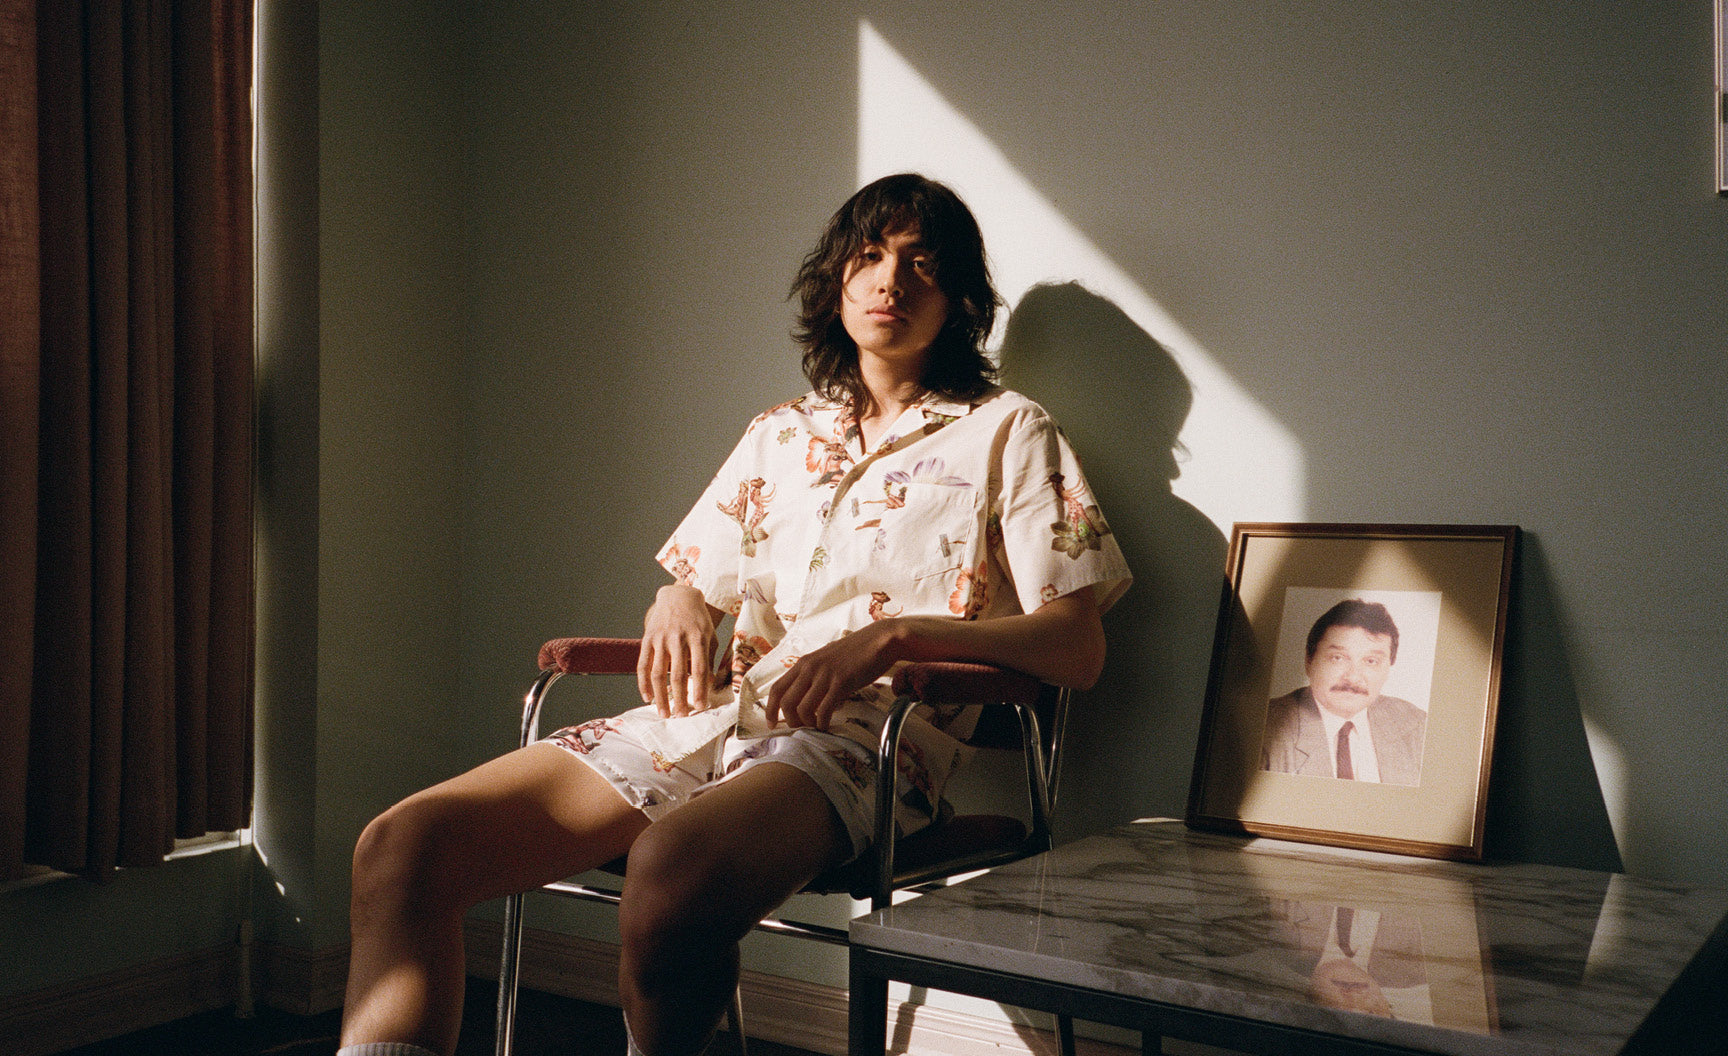 Man wearing Bather camp shirt sitting in chair with sunlight